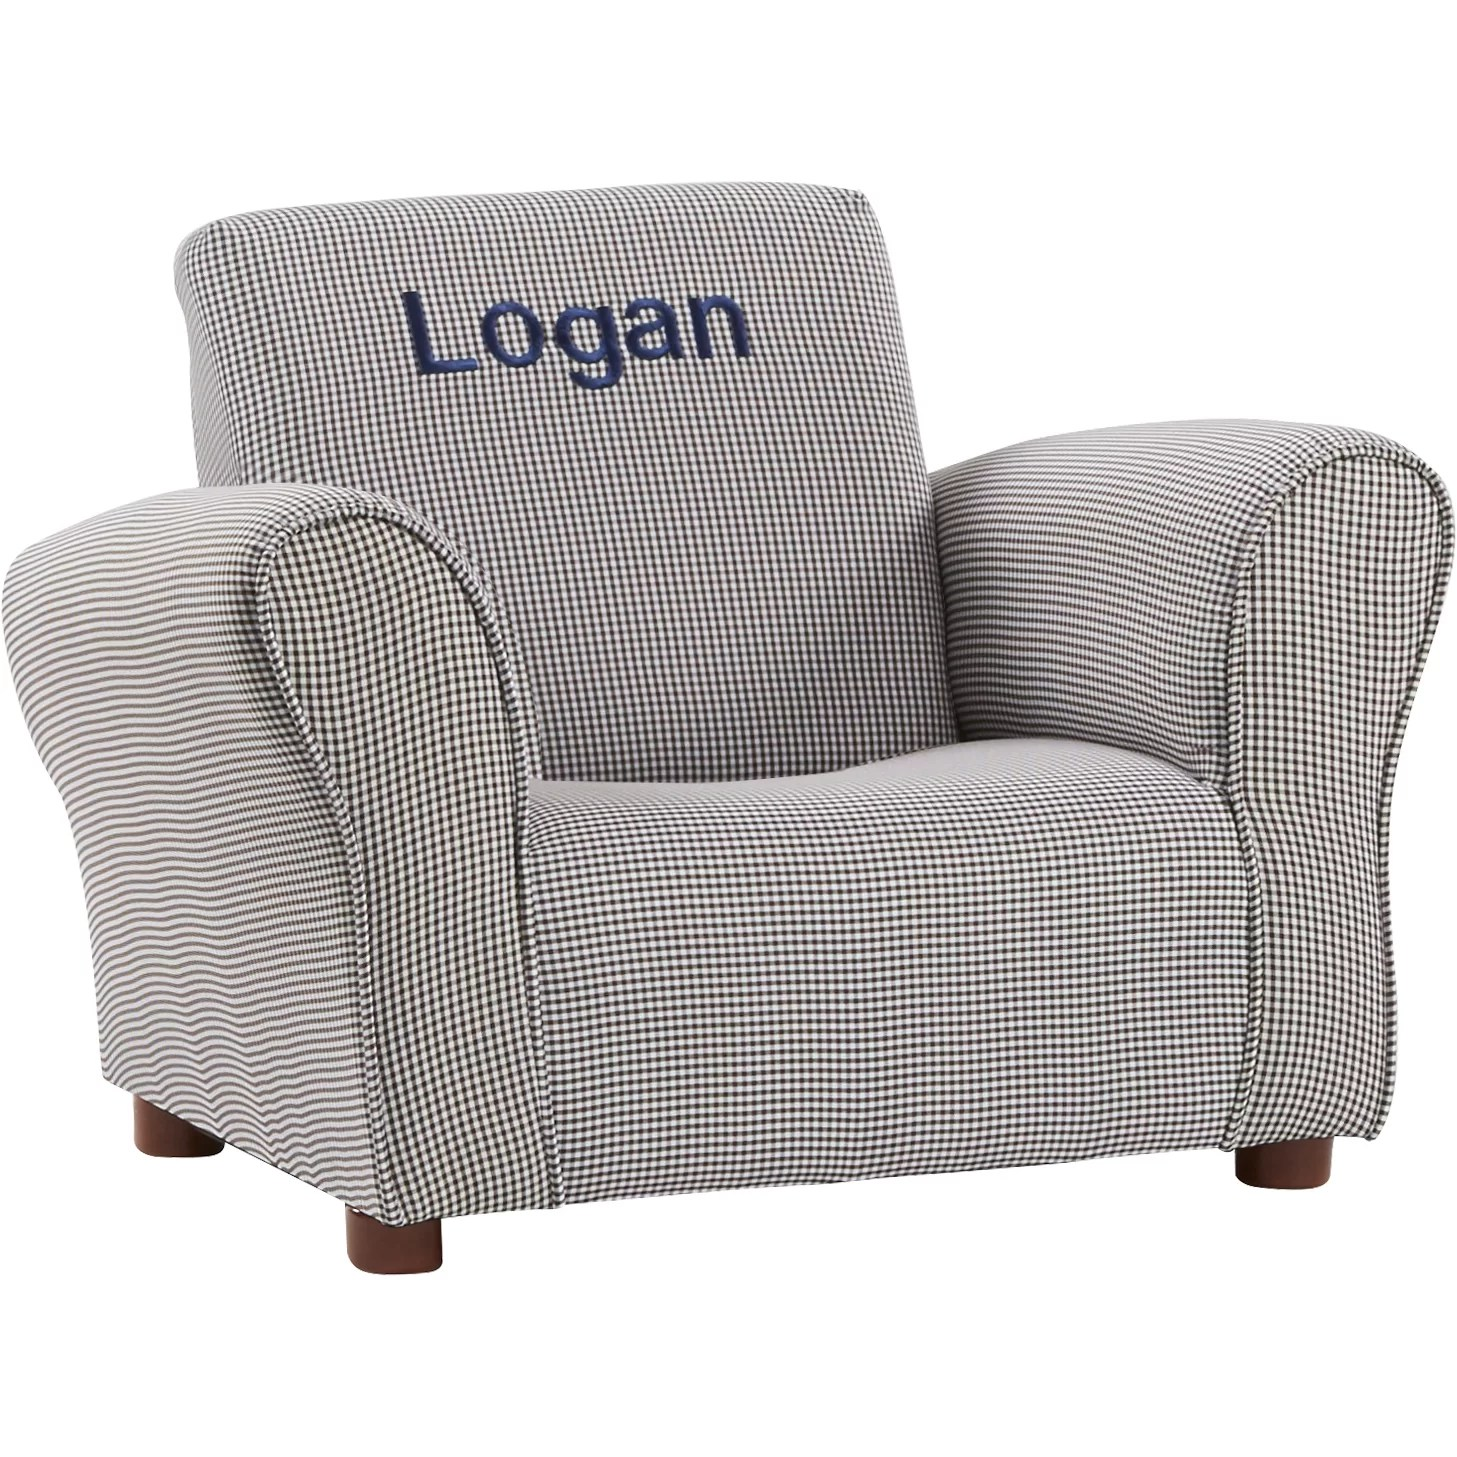 personalized little kid chair custom bean bag chairs canada keet furniture kids club